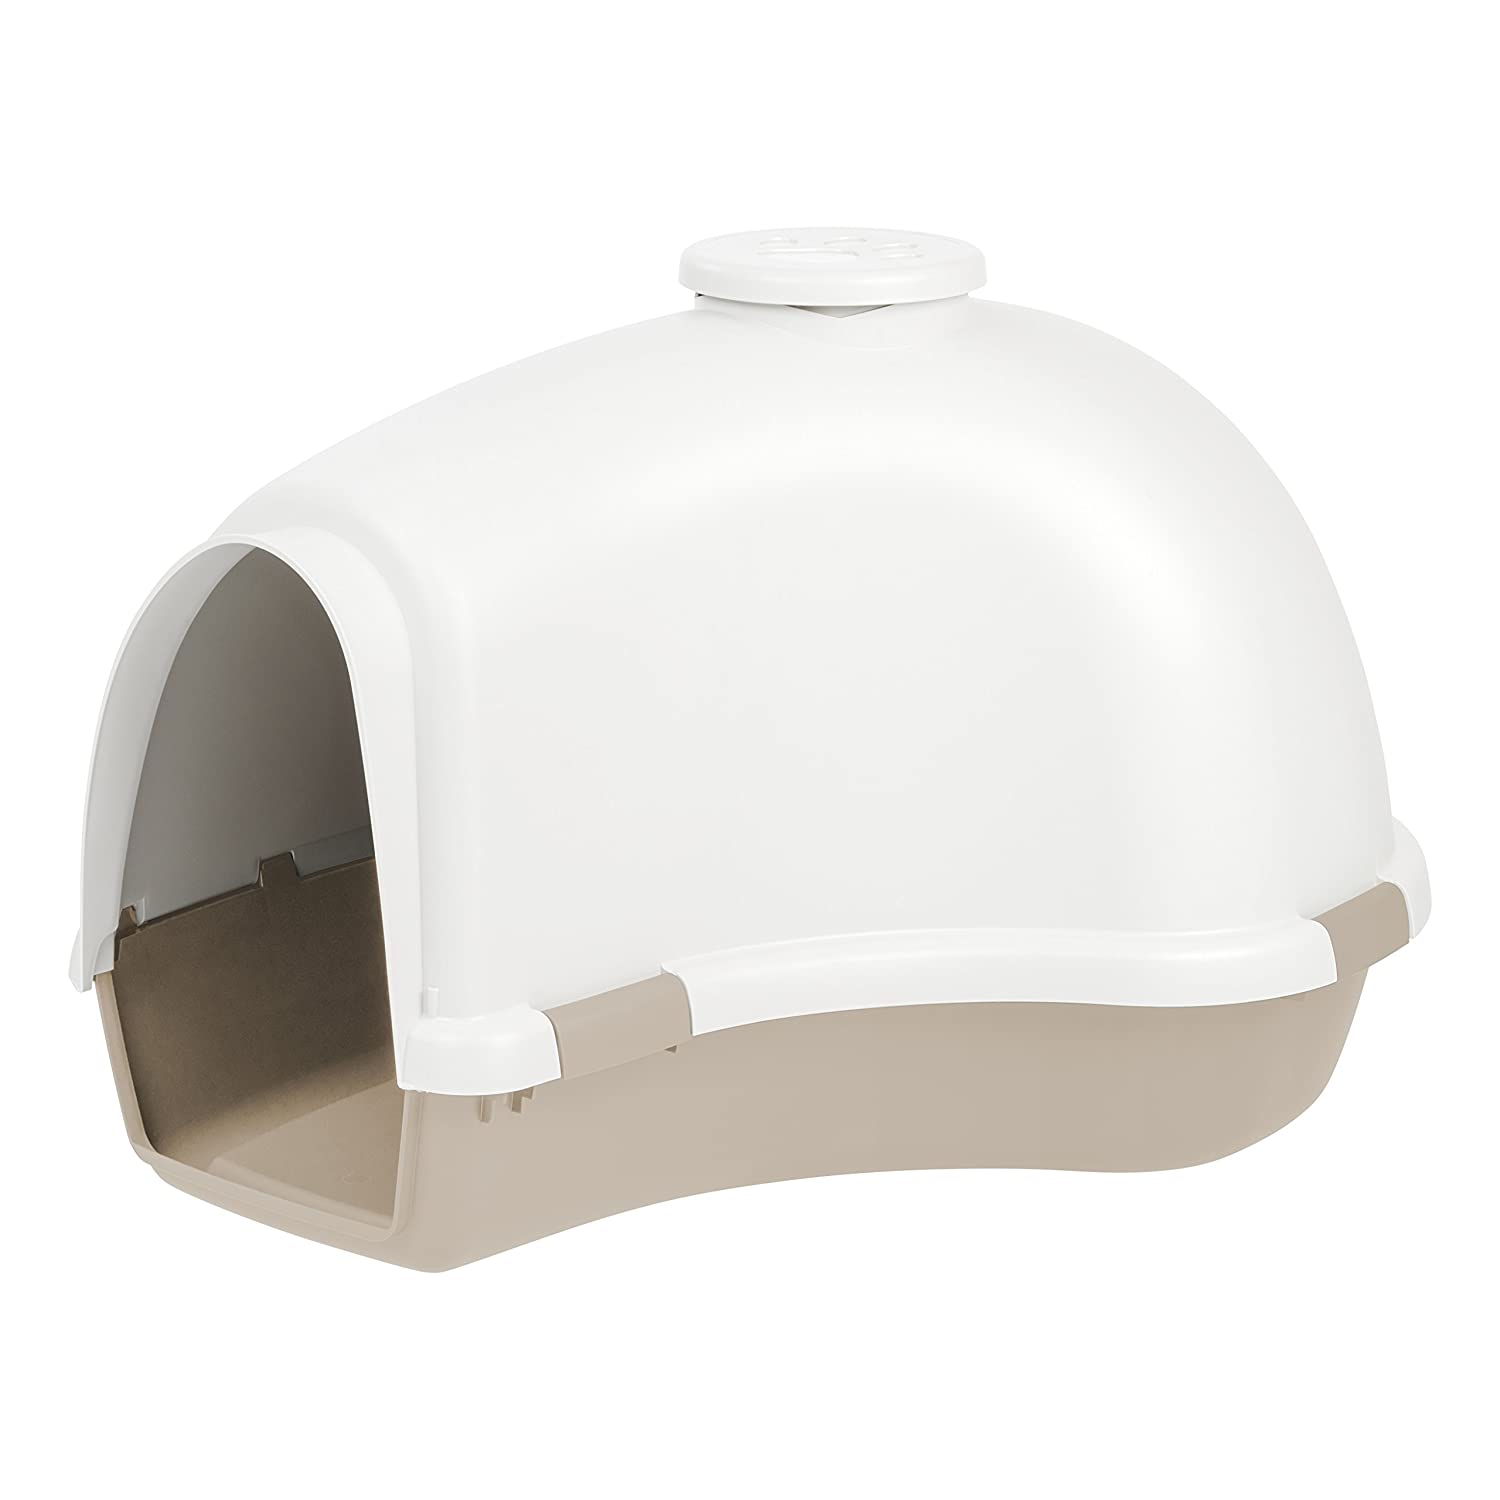 IRIS IDH-L Large Igloo Shaped Dog House, White Almond